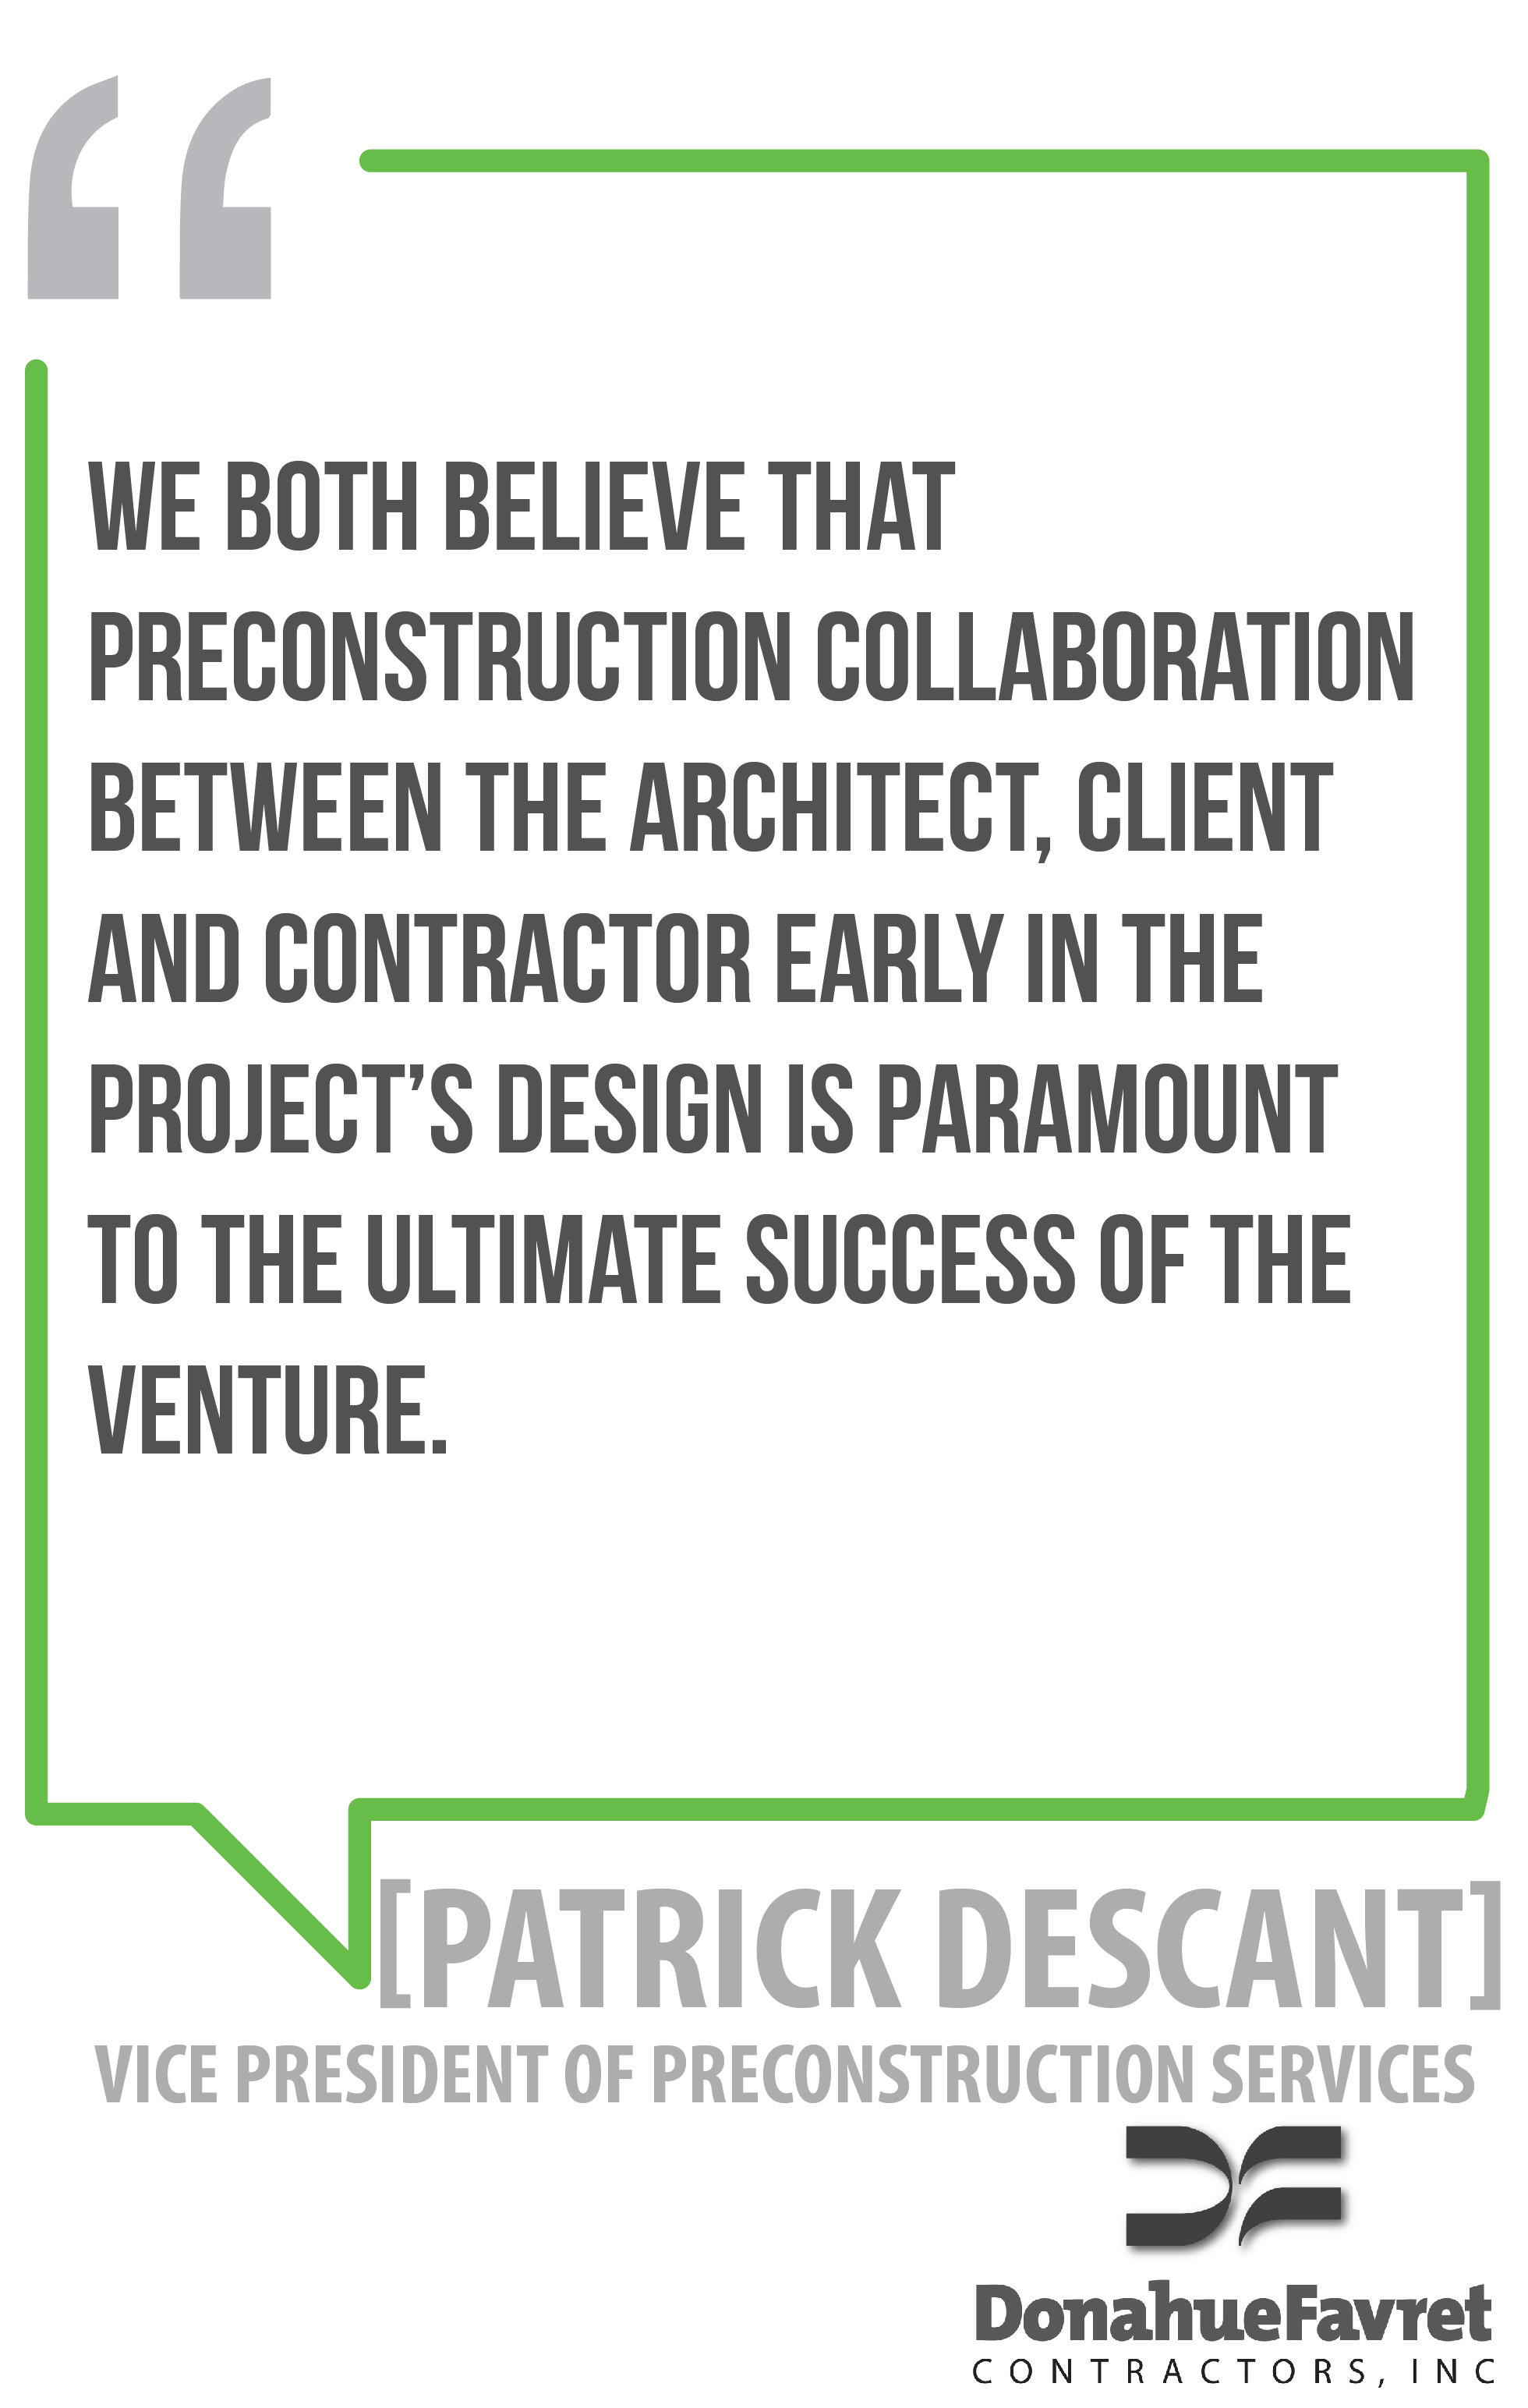 Greenleaf_Lawson_Architects-Testimonials-DESCANT-01.jpg